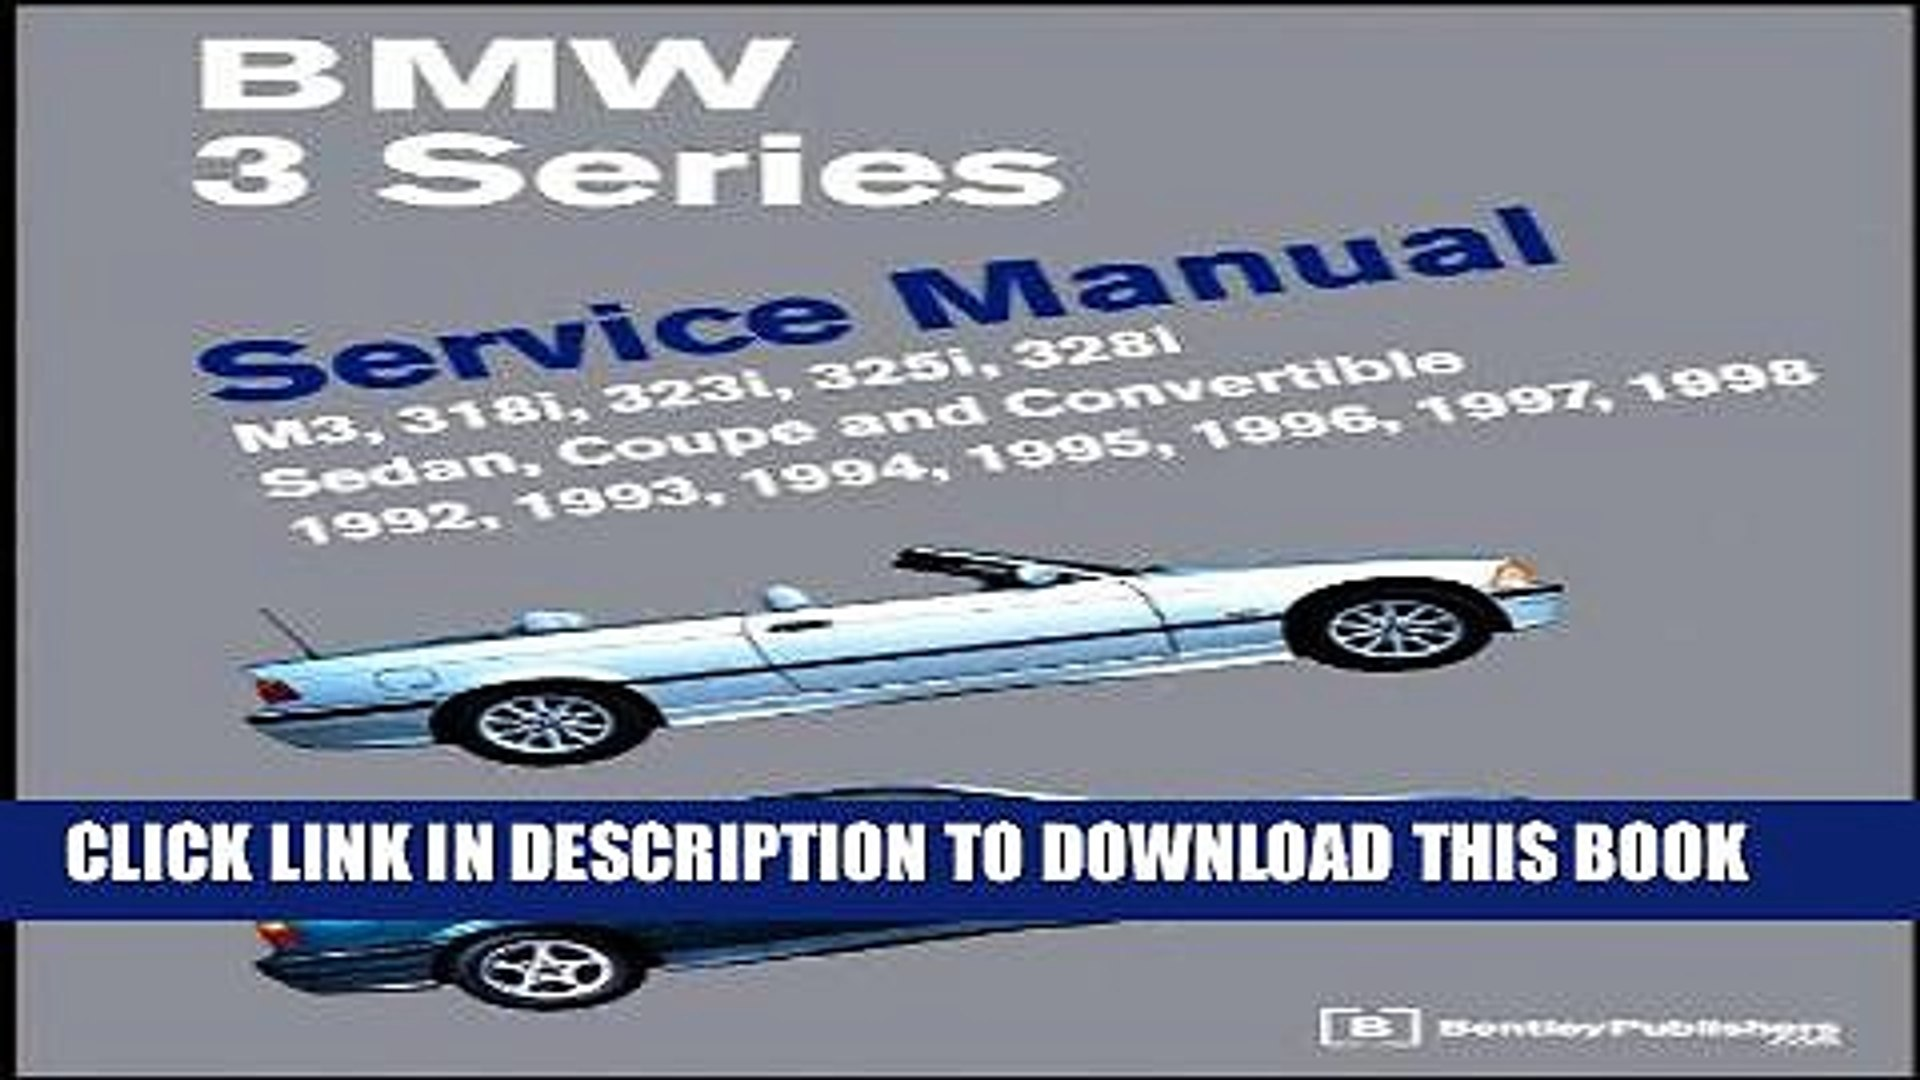 BMW E36 1992 1993 1994 1995 1996 1997 1998 3 Series Service Repair Manual